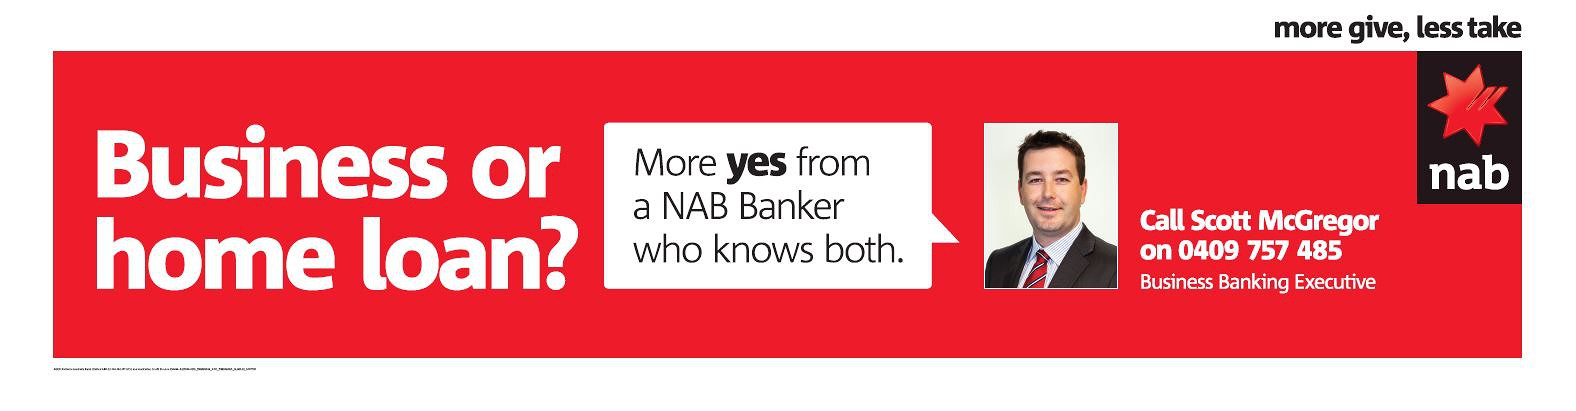 Image of NAB Business or Homeloan Campaign